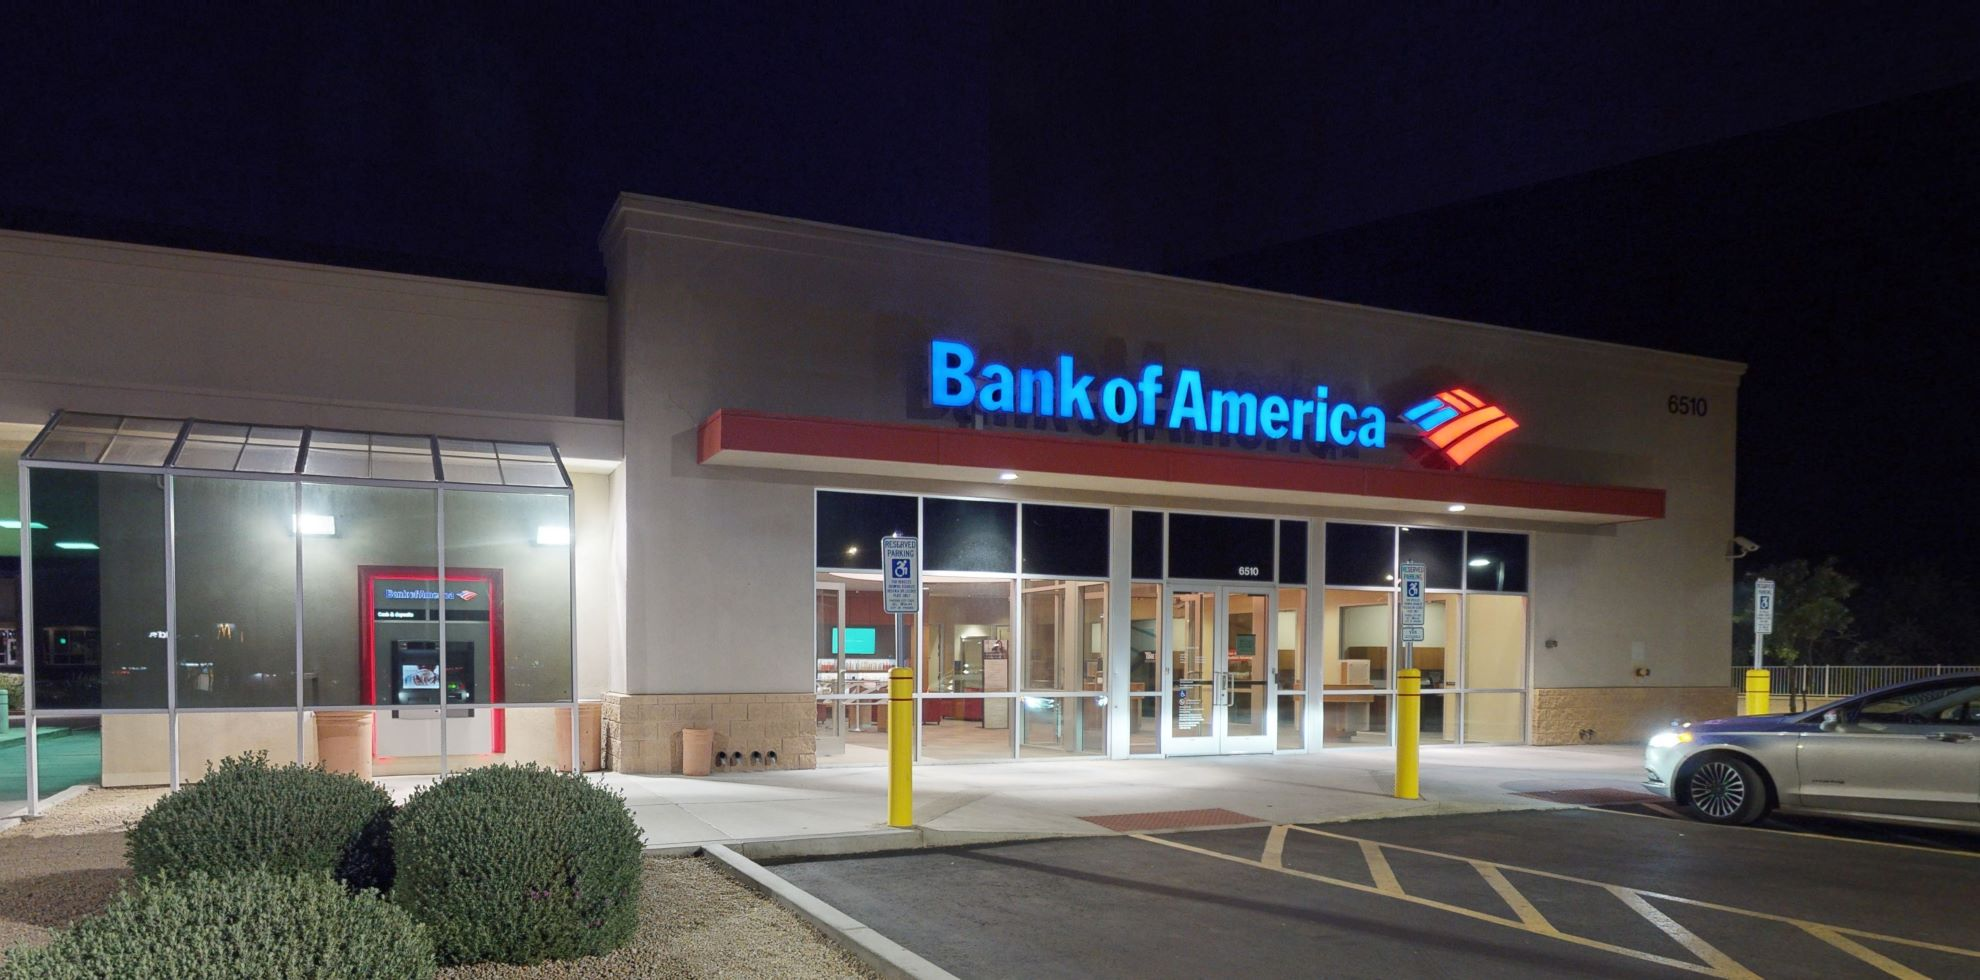 Bank of America financial center with drive-thru ATM   6510 W Happy Valley Rd, Glendale, AZ 85310